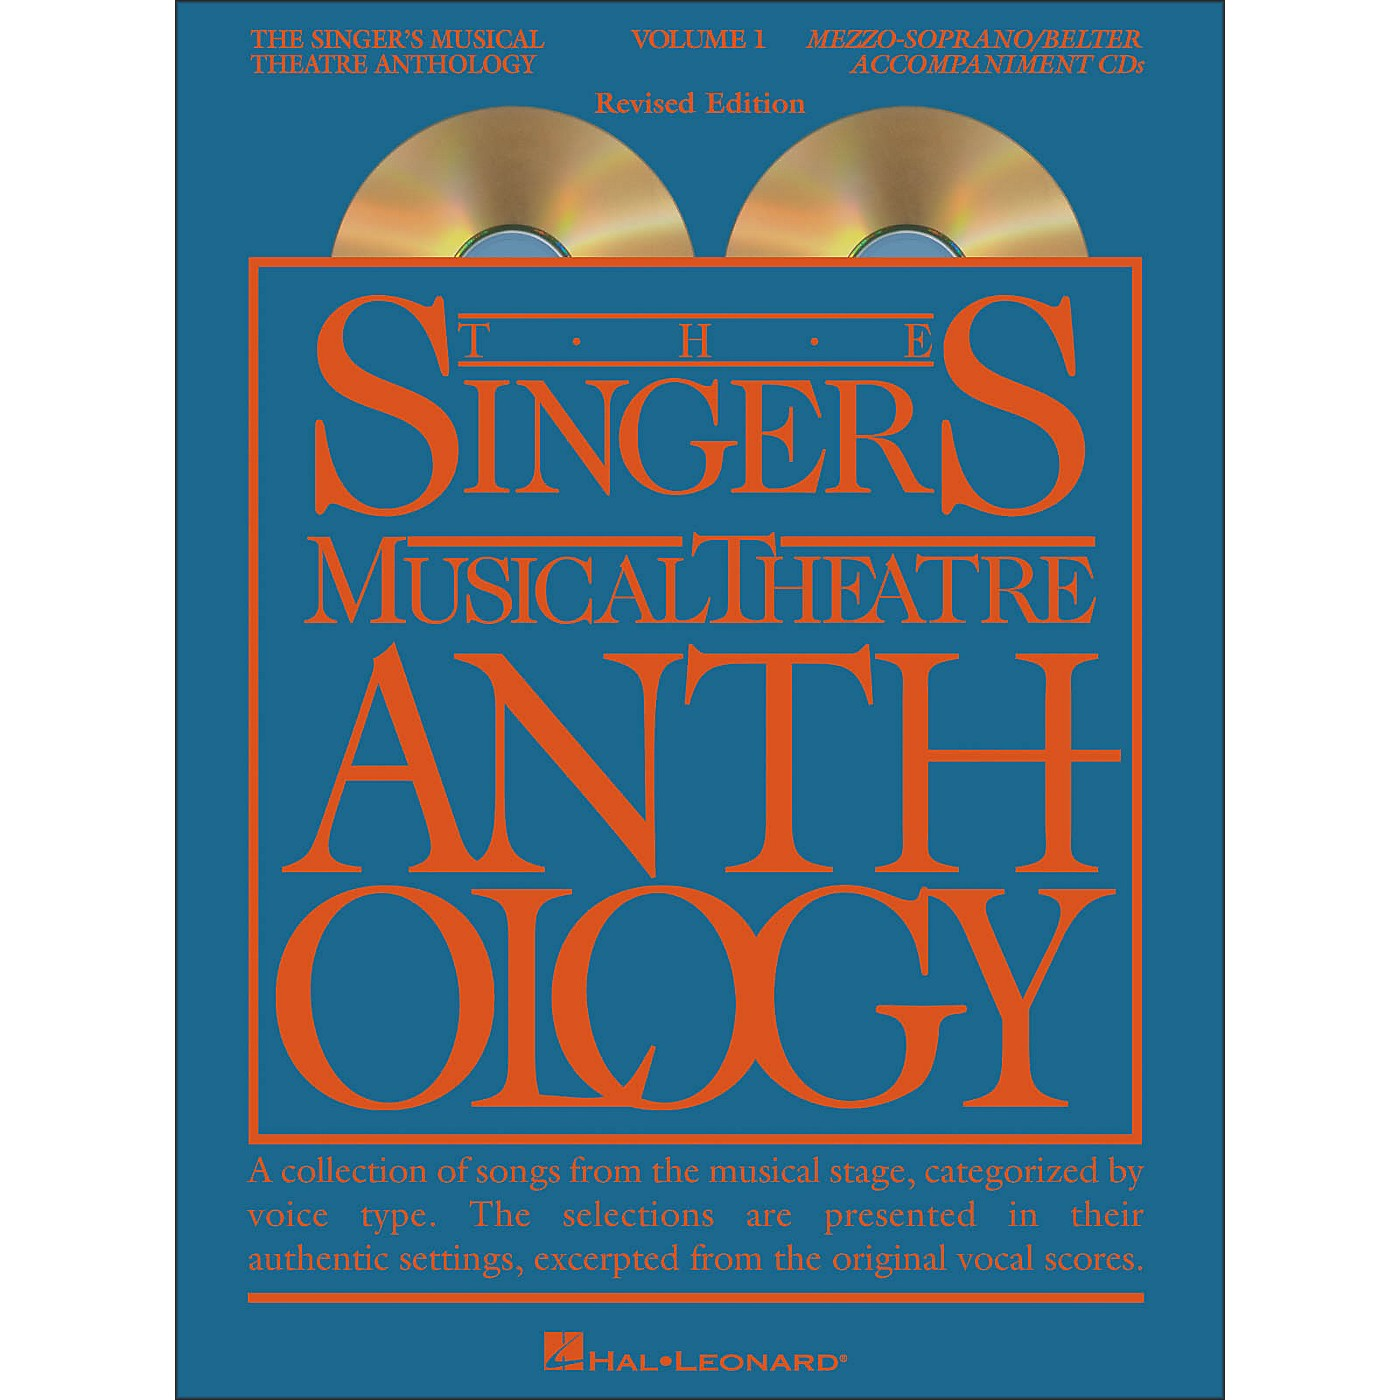 Hal Leonard The Singer's Musical Theatre Anthology for Mezzo-Soprano / Belter Volume 1 (2CDs) thumbnail